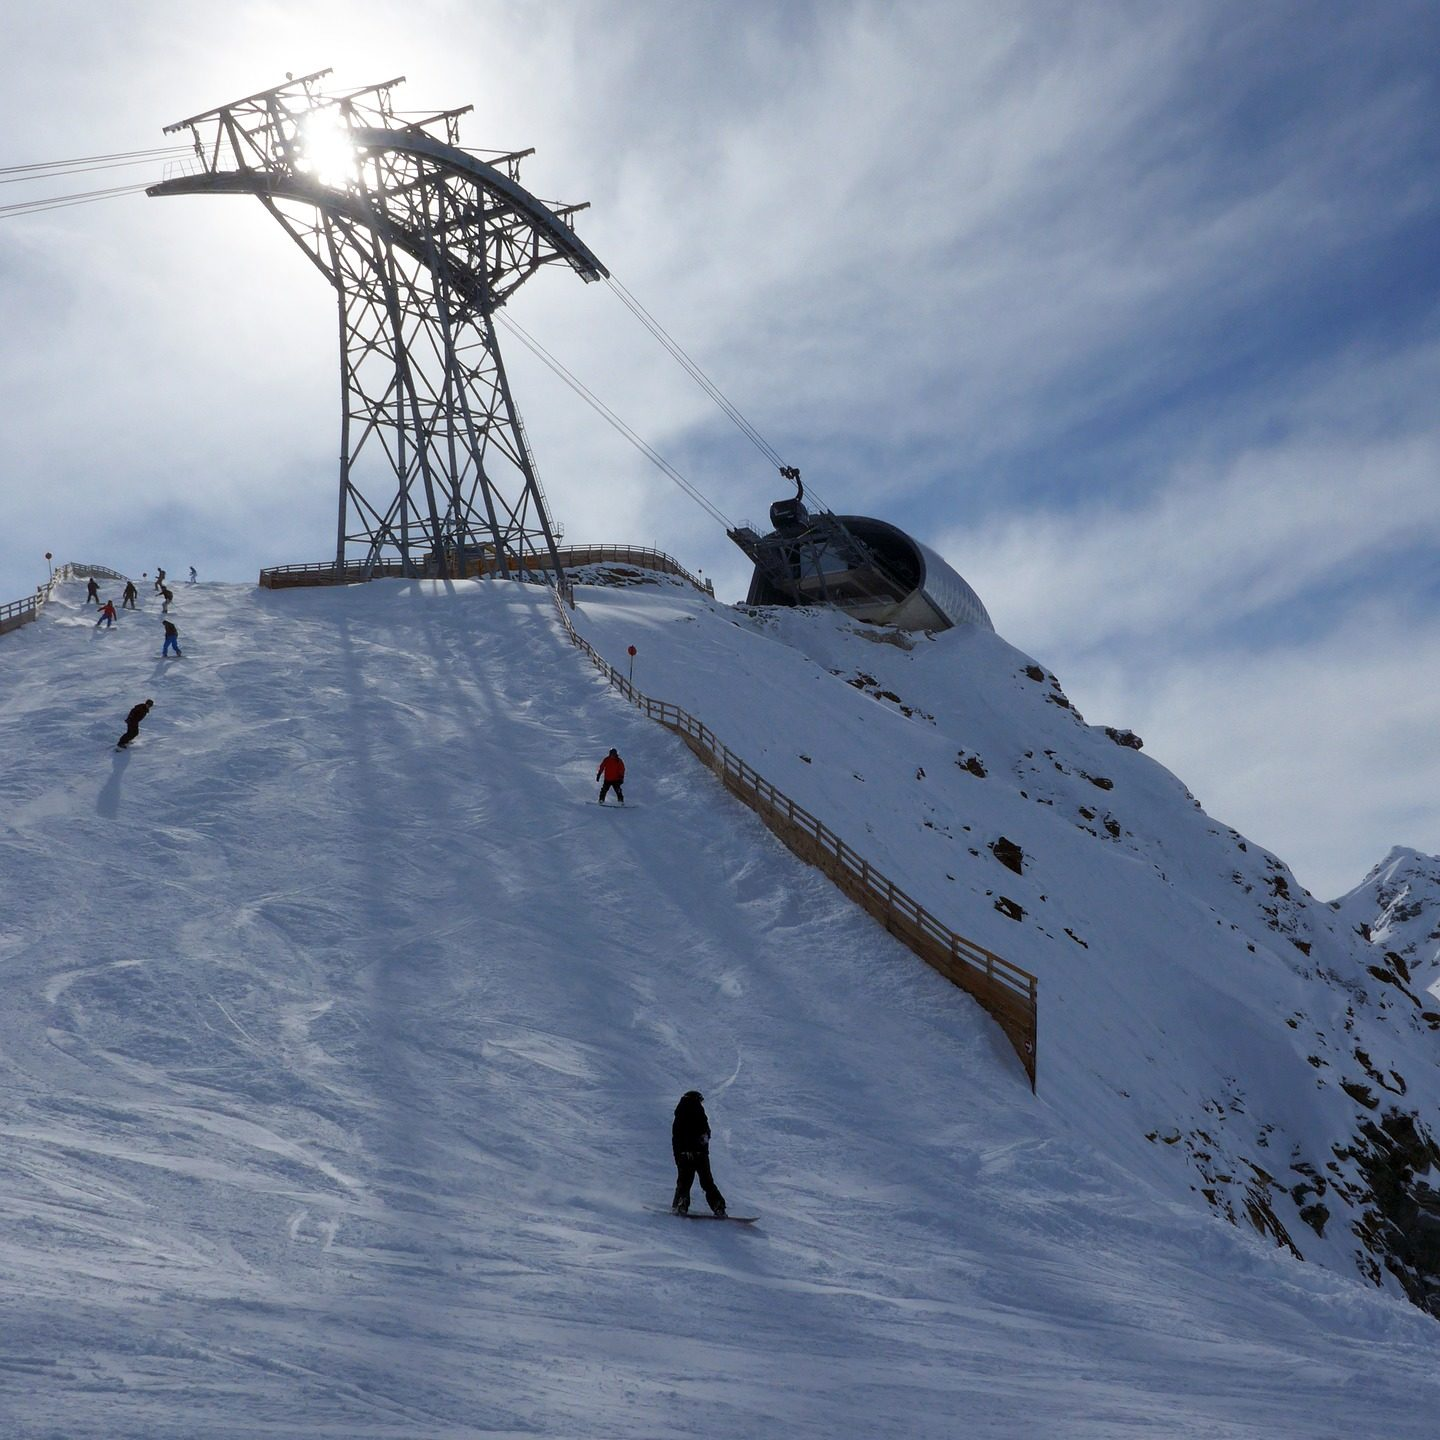 Cheap ski holiday in Europe